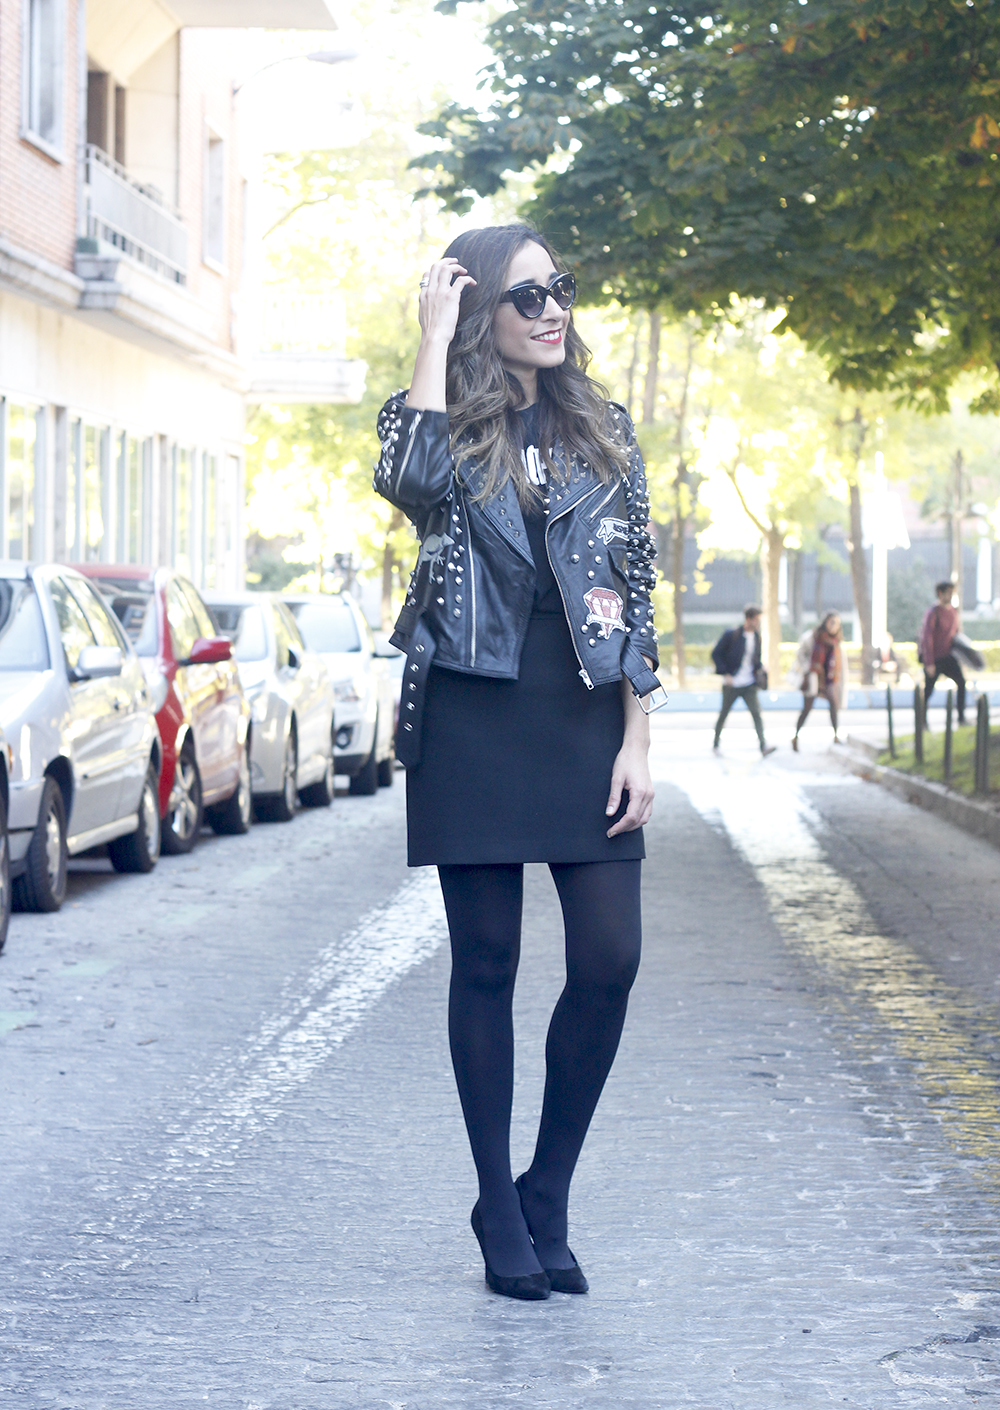 Leather jacket with studs and patches black skirt heels style fashion outfit02